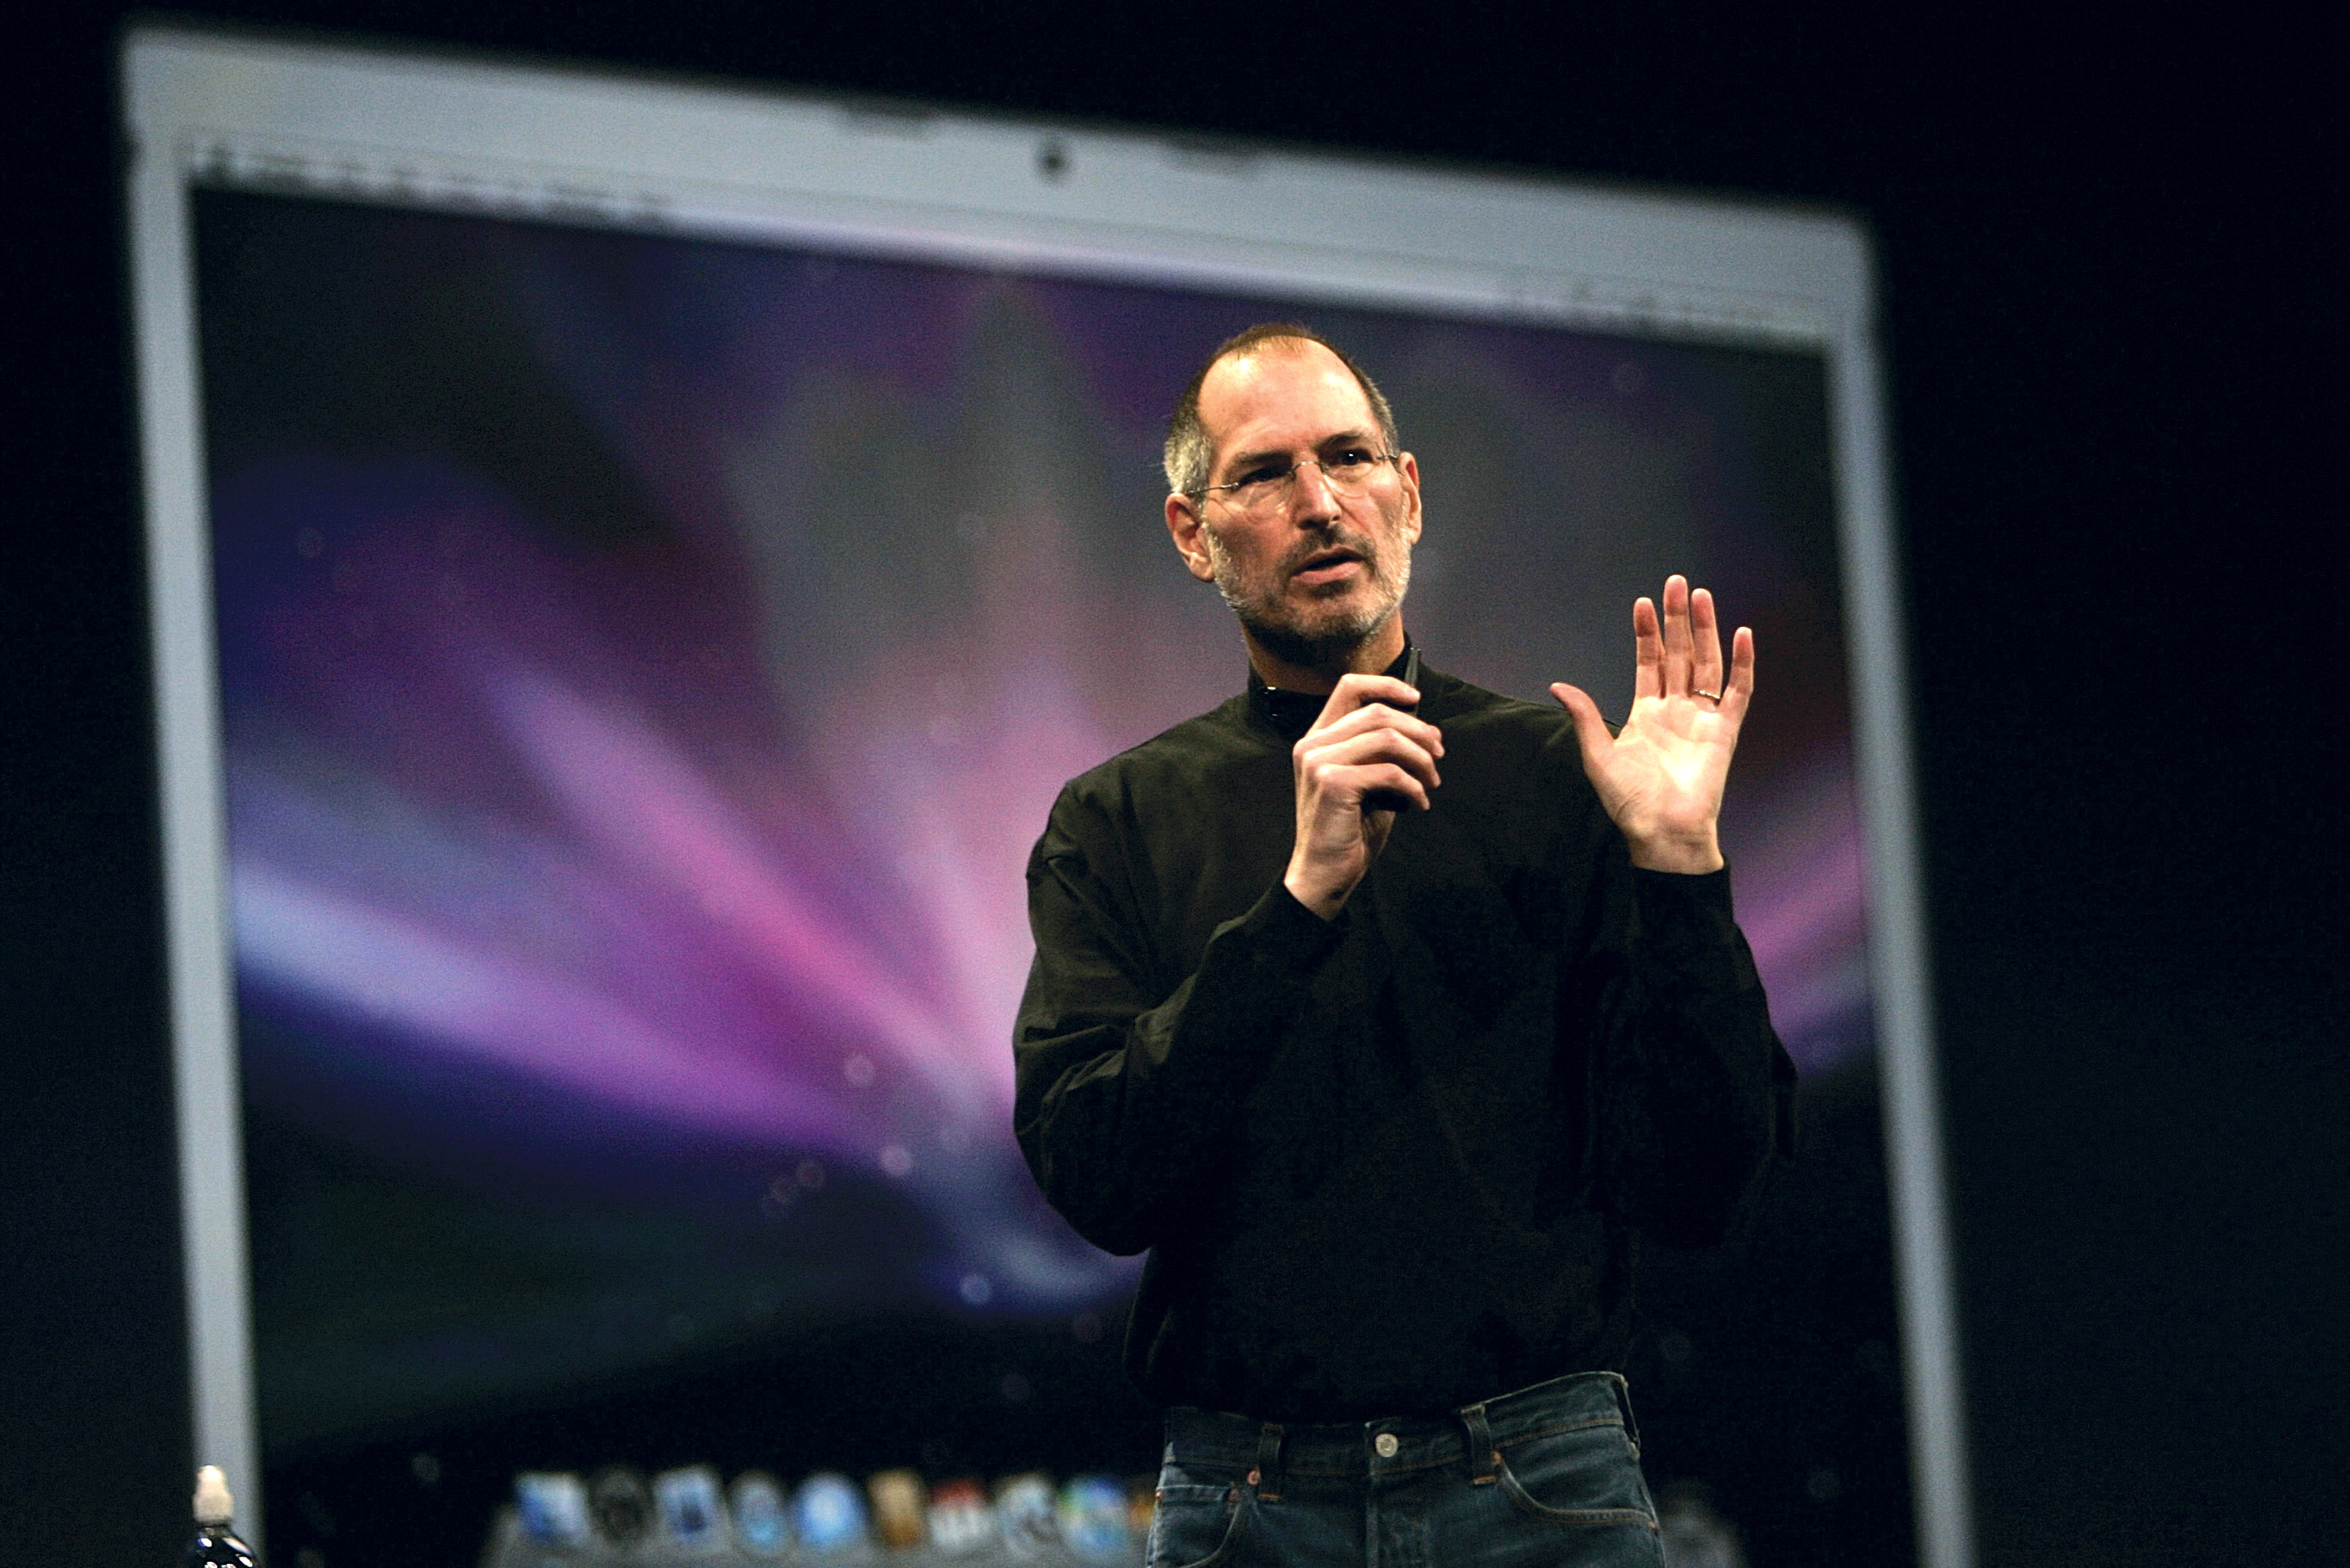 SAN FRANCISCO - JANUARY 15:  Apple CEO and co-founder Steve Jobs delivers the keynote speech to kick off the 2008 Macworld at the Moscone Center January 15, 2008 in San Francisco, California. Jobs introduced the wireless Time Capsule backup appliance, Apple TV Take 2 and the new ultra thin laptop MacBook Air.  (Photo by David Paul Morris/Getty Images)